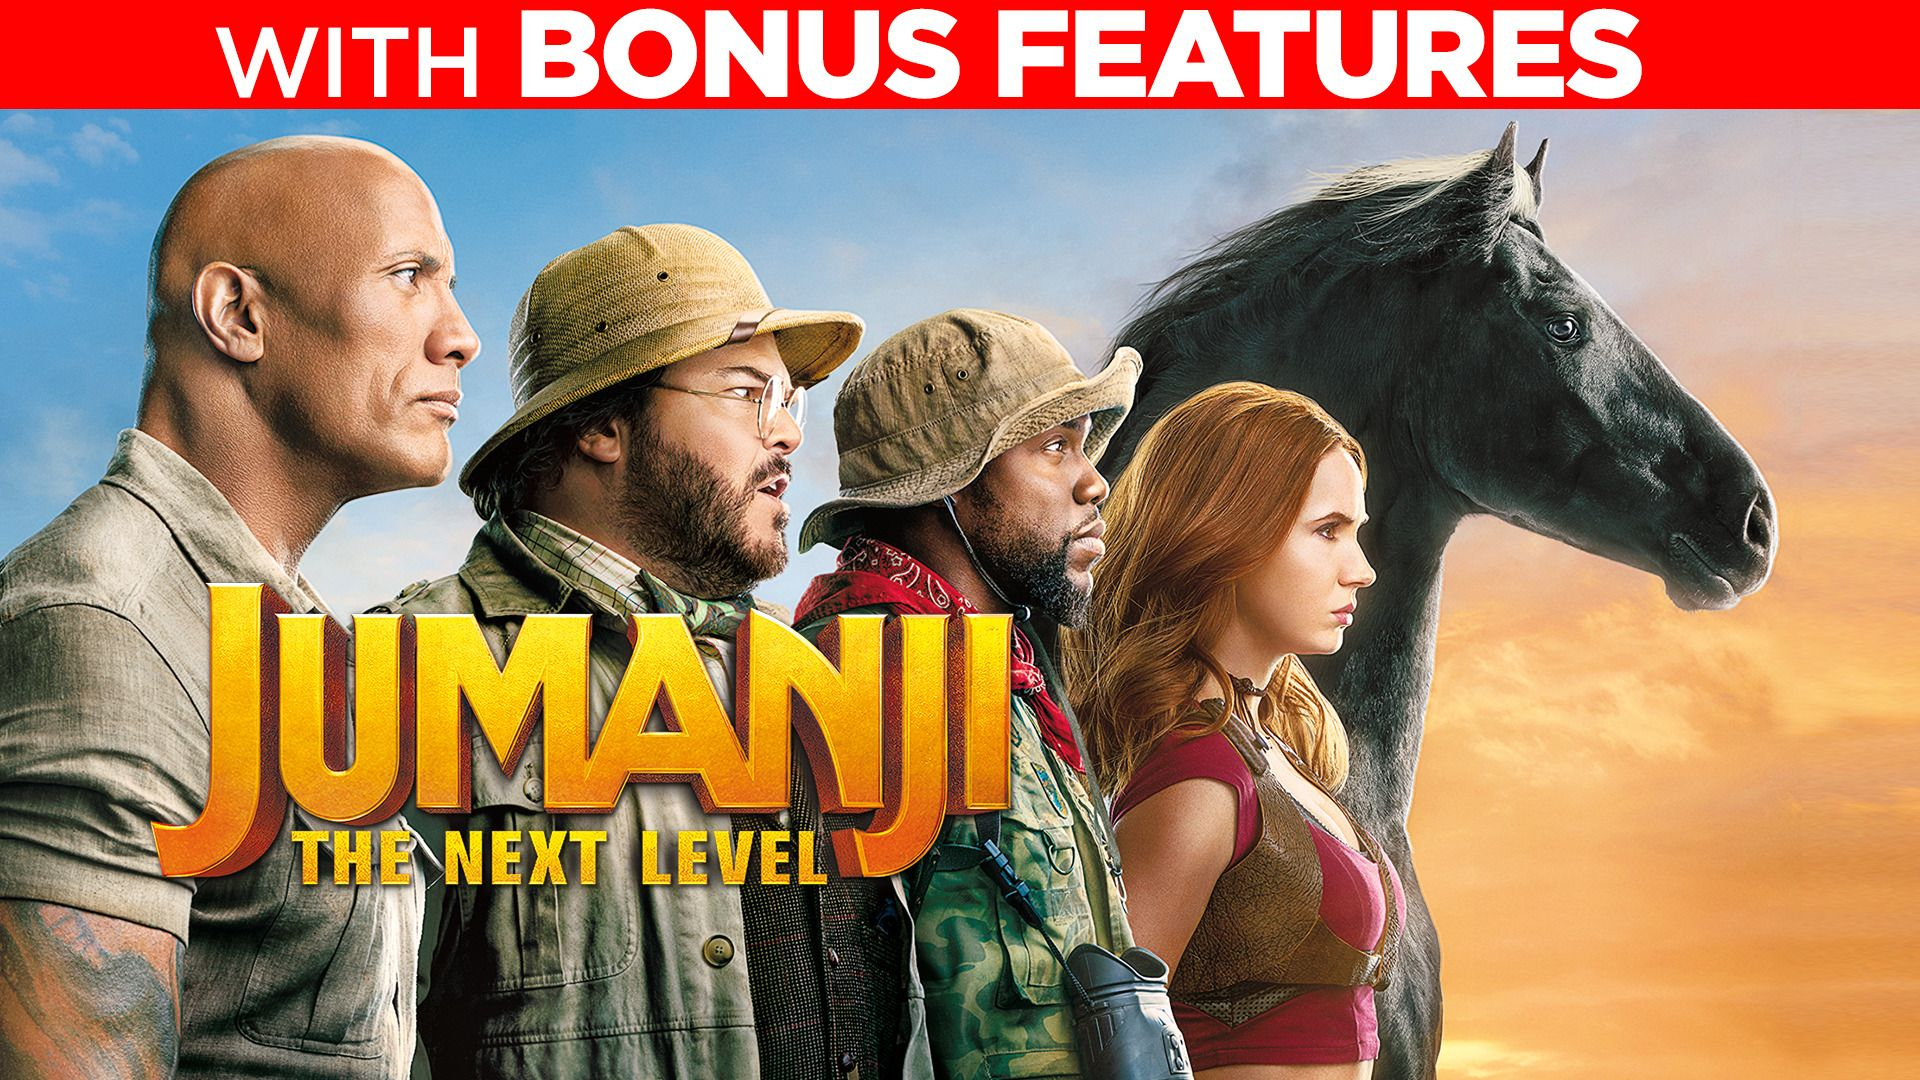 Jumanji: The Next Level (With Bonus Features)